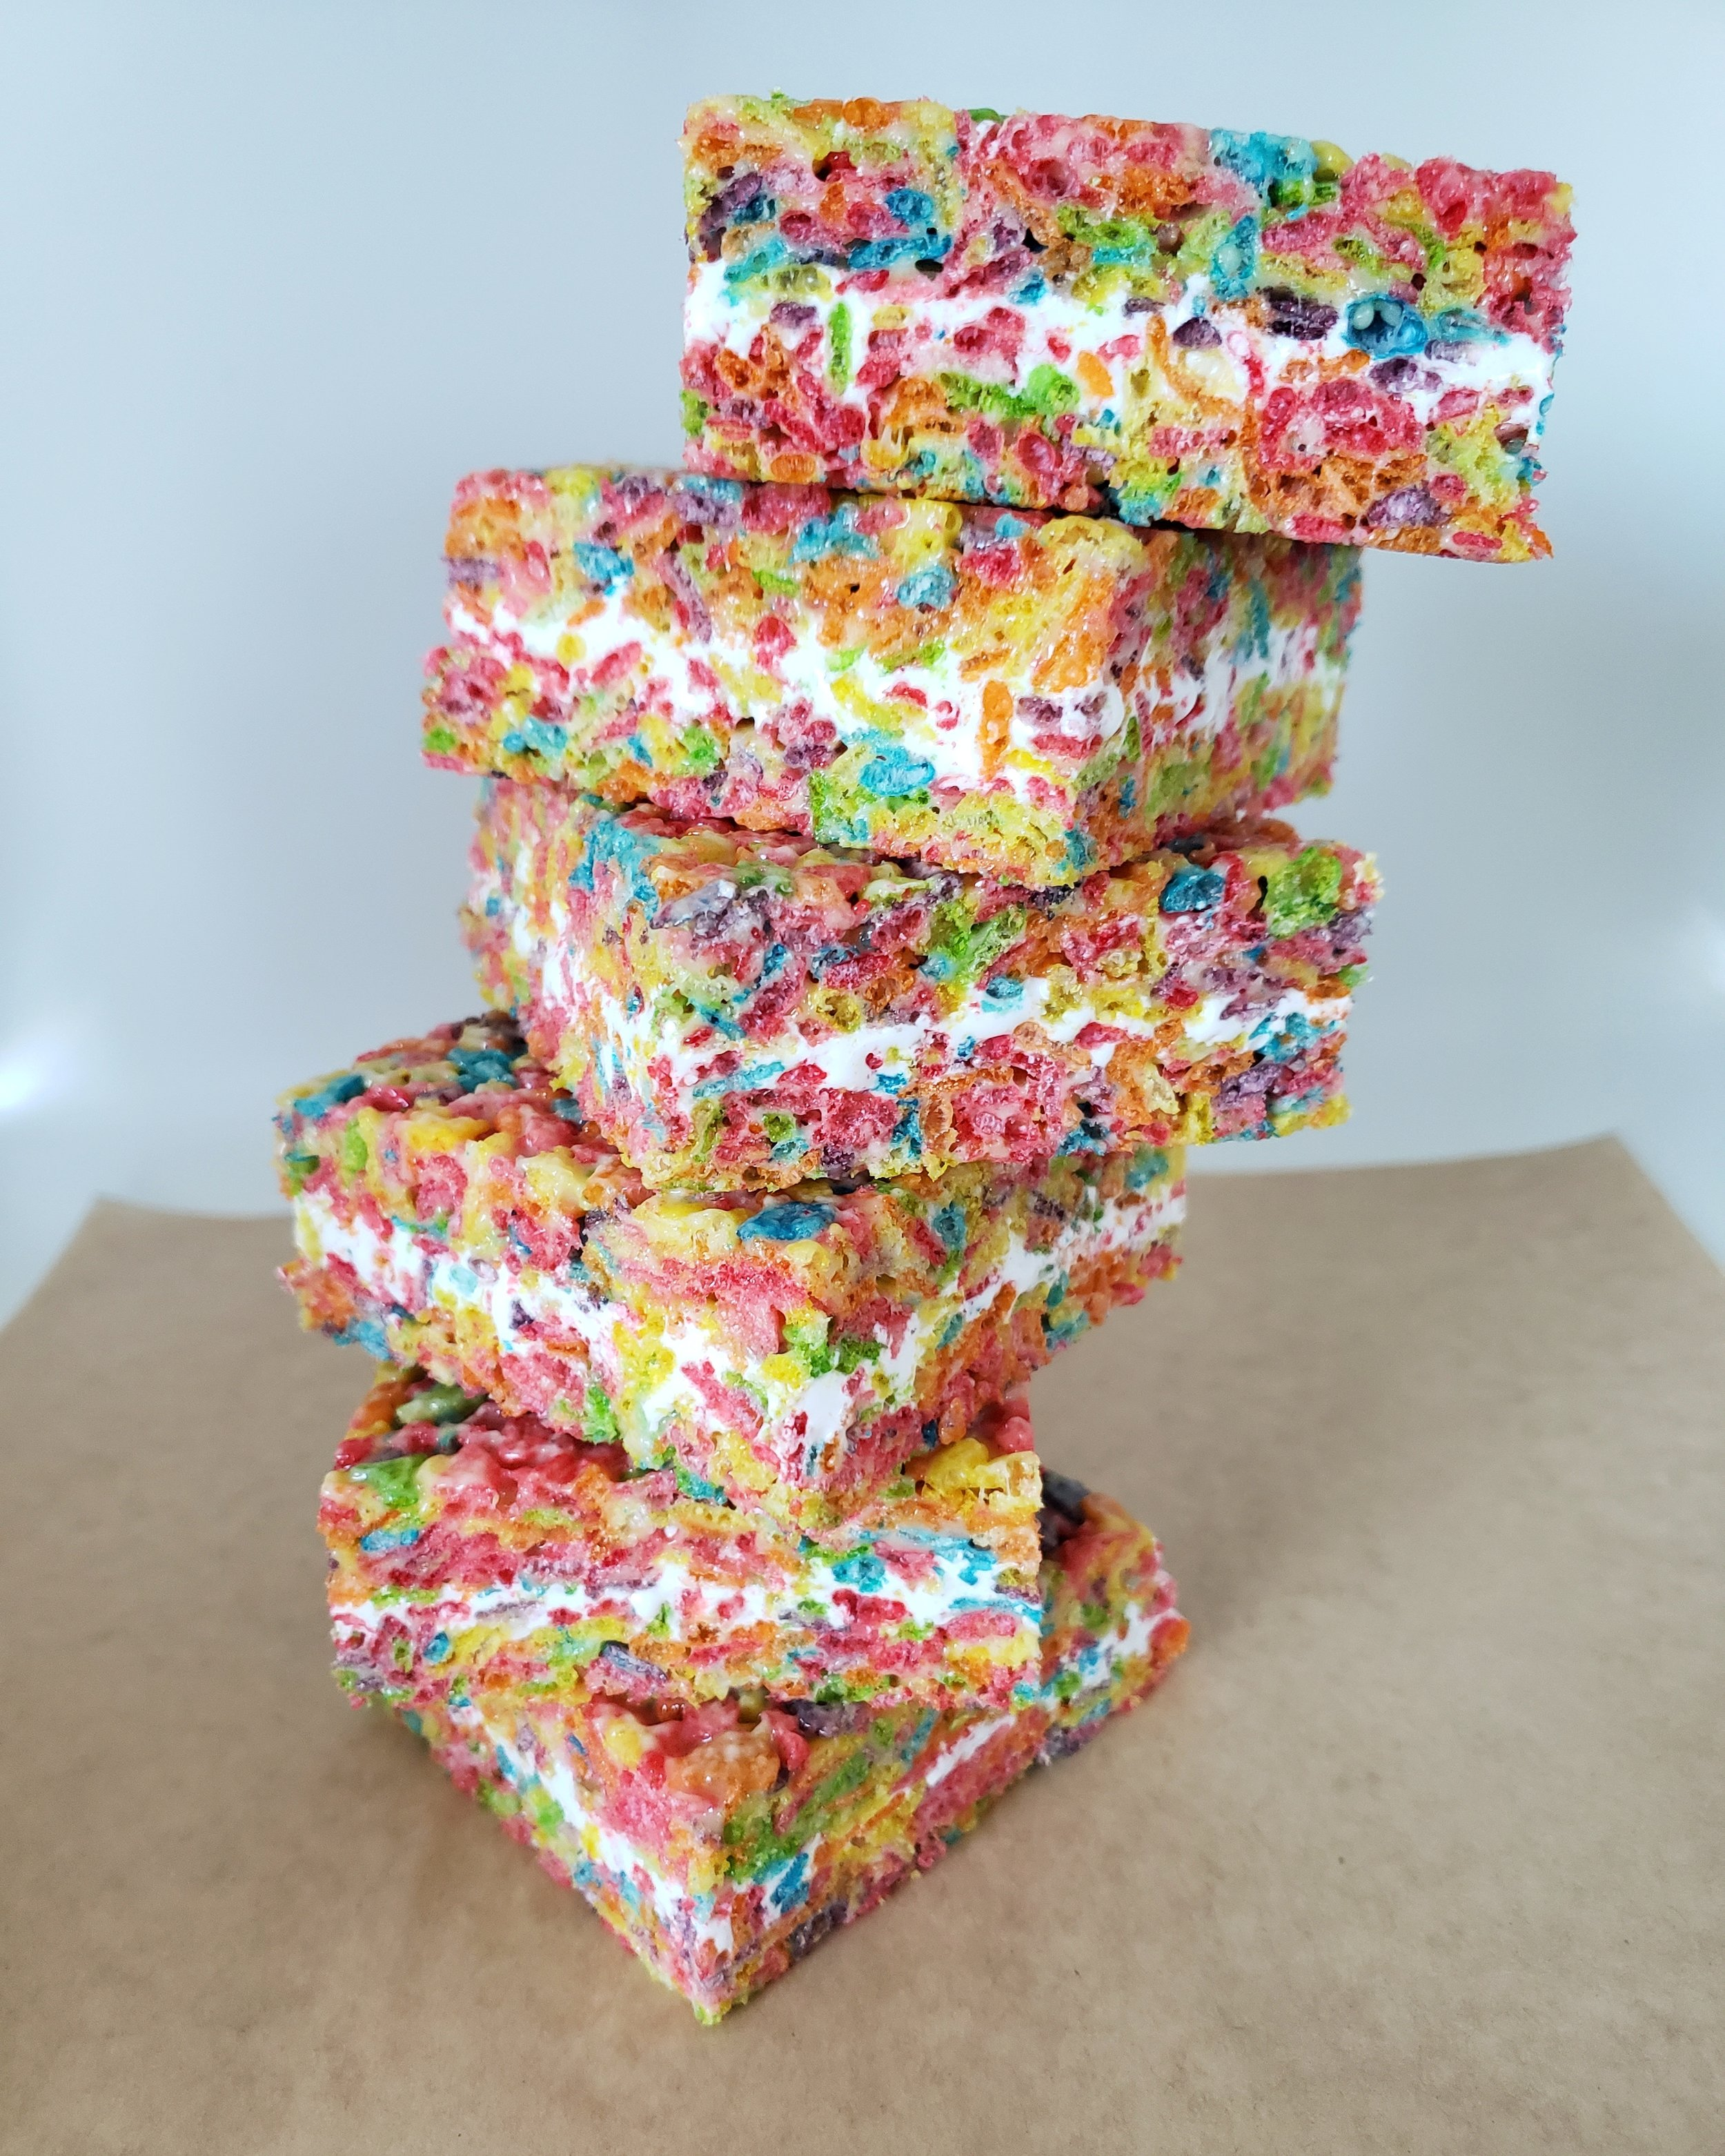 FRUITY FLIGHT BAR   2 STACKED LAYERS OF FRUITY PEBBLES CEREAL WITH A MARSHMALLOW CREAM CENTER.   AVAILABLE DOSES:  1 BAR, 400 MG   GLUTEN FREE, SOY FREE